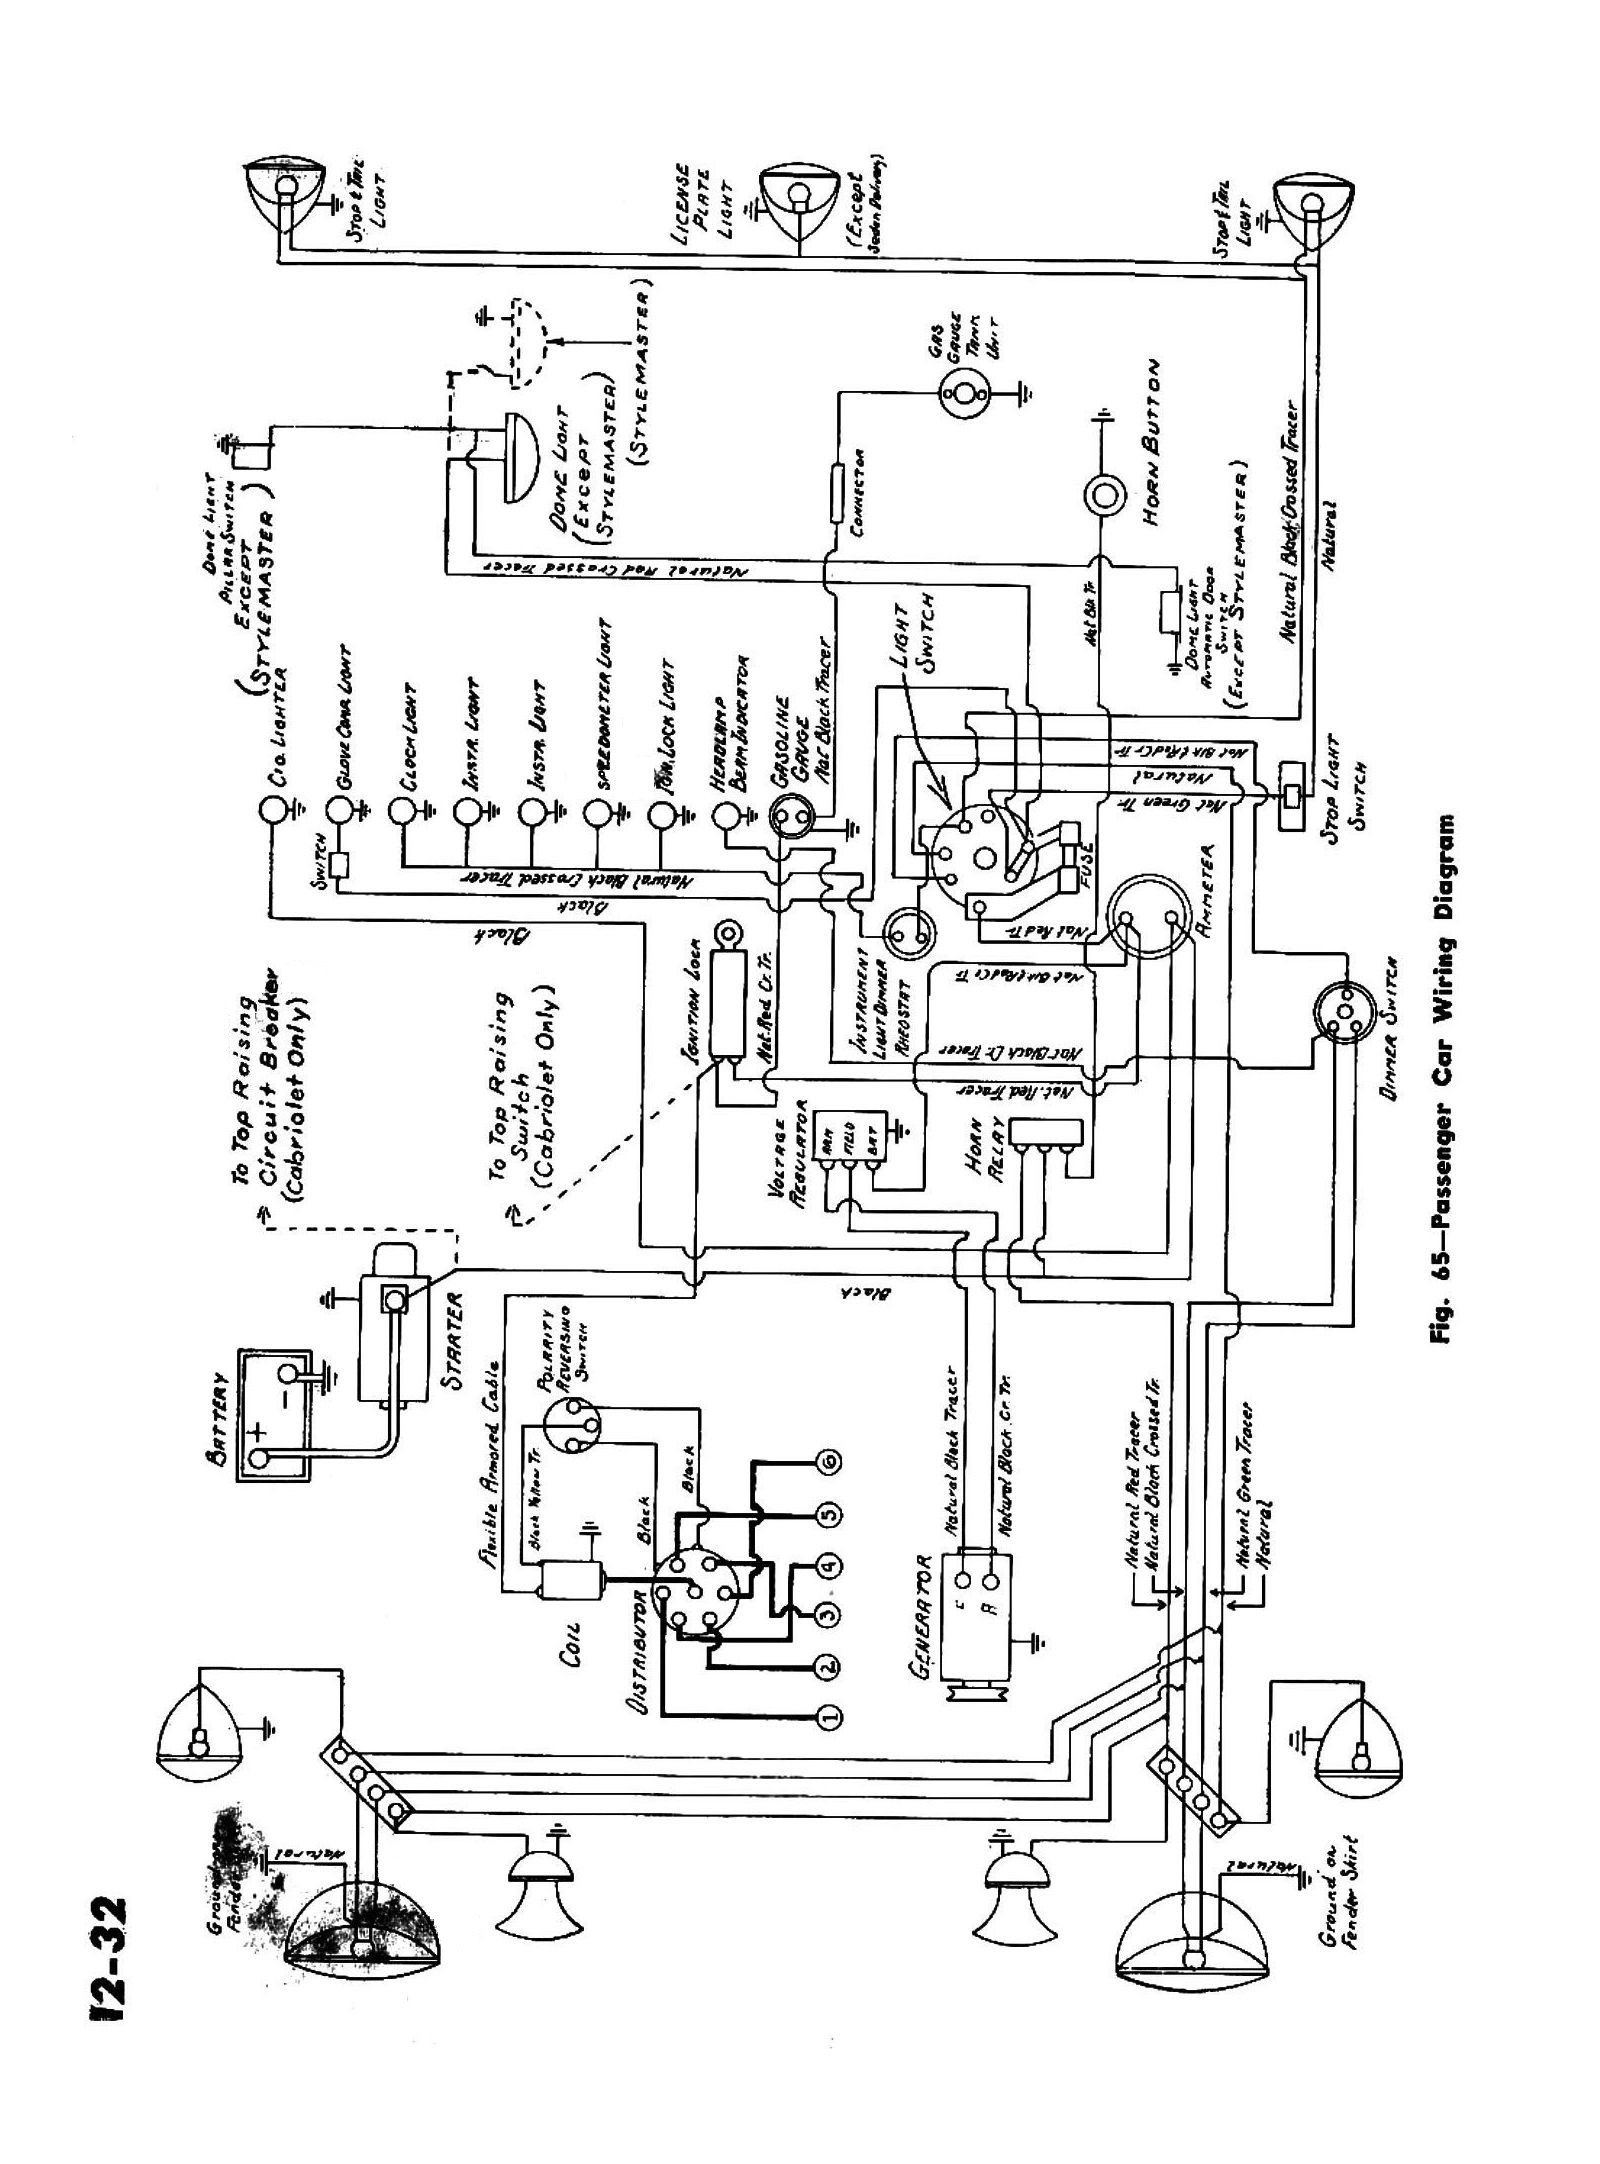 Ford Car Wiring Diagrams Archive Of Automotive Diagram 1956 For Electrical Schematics Rh Glenifferagility Co Uk